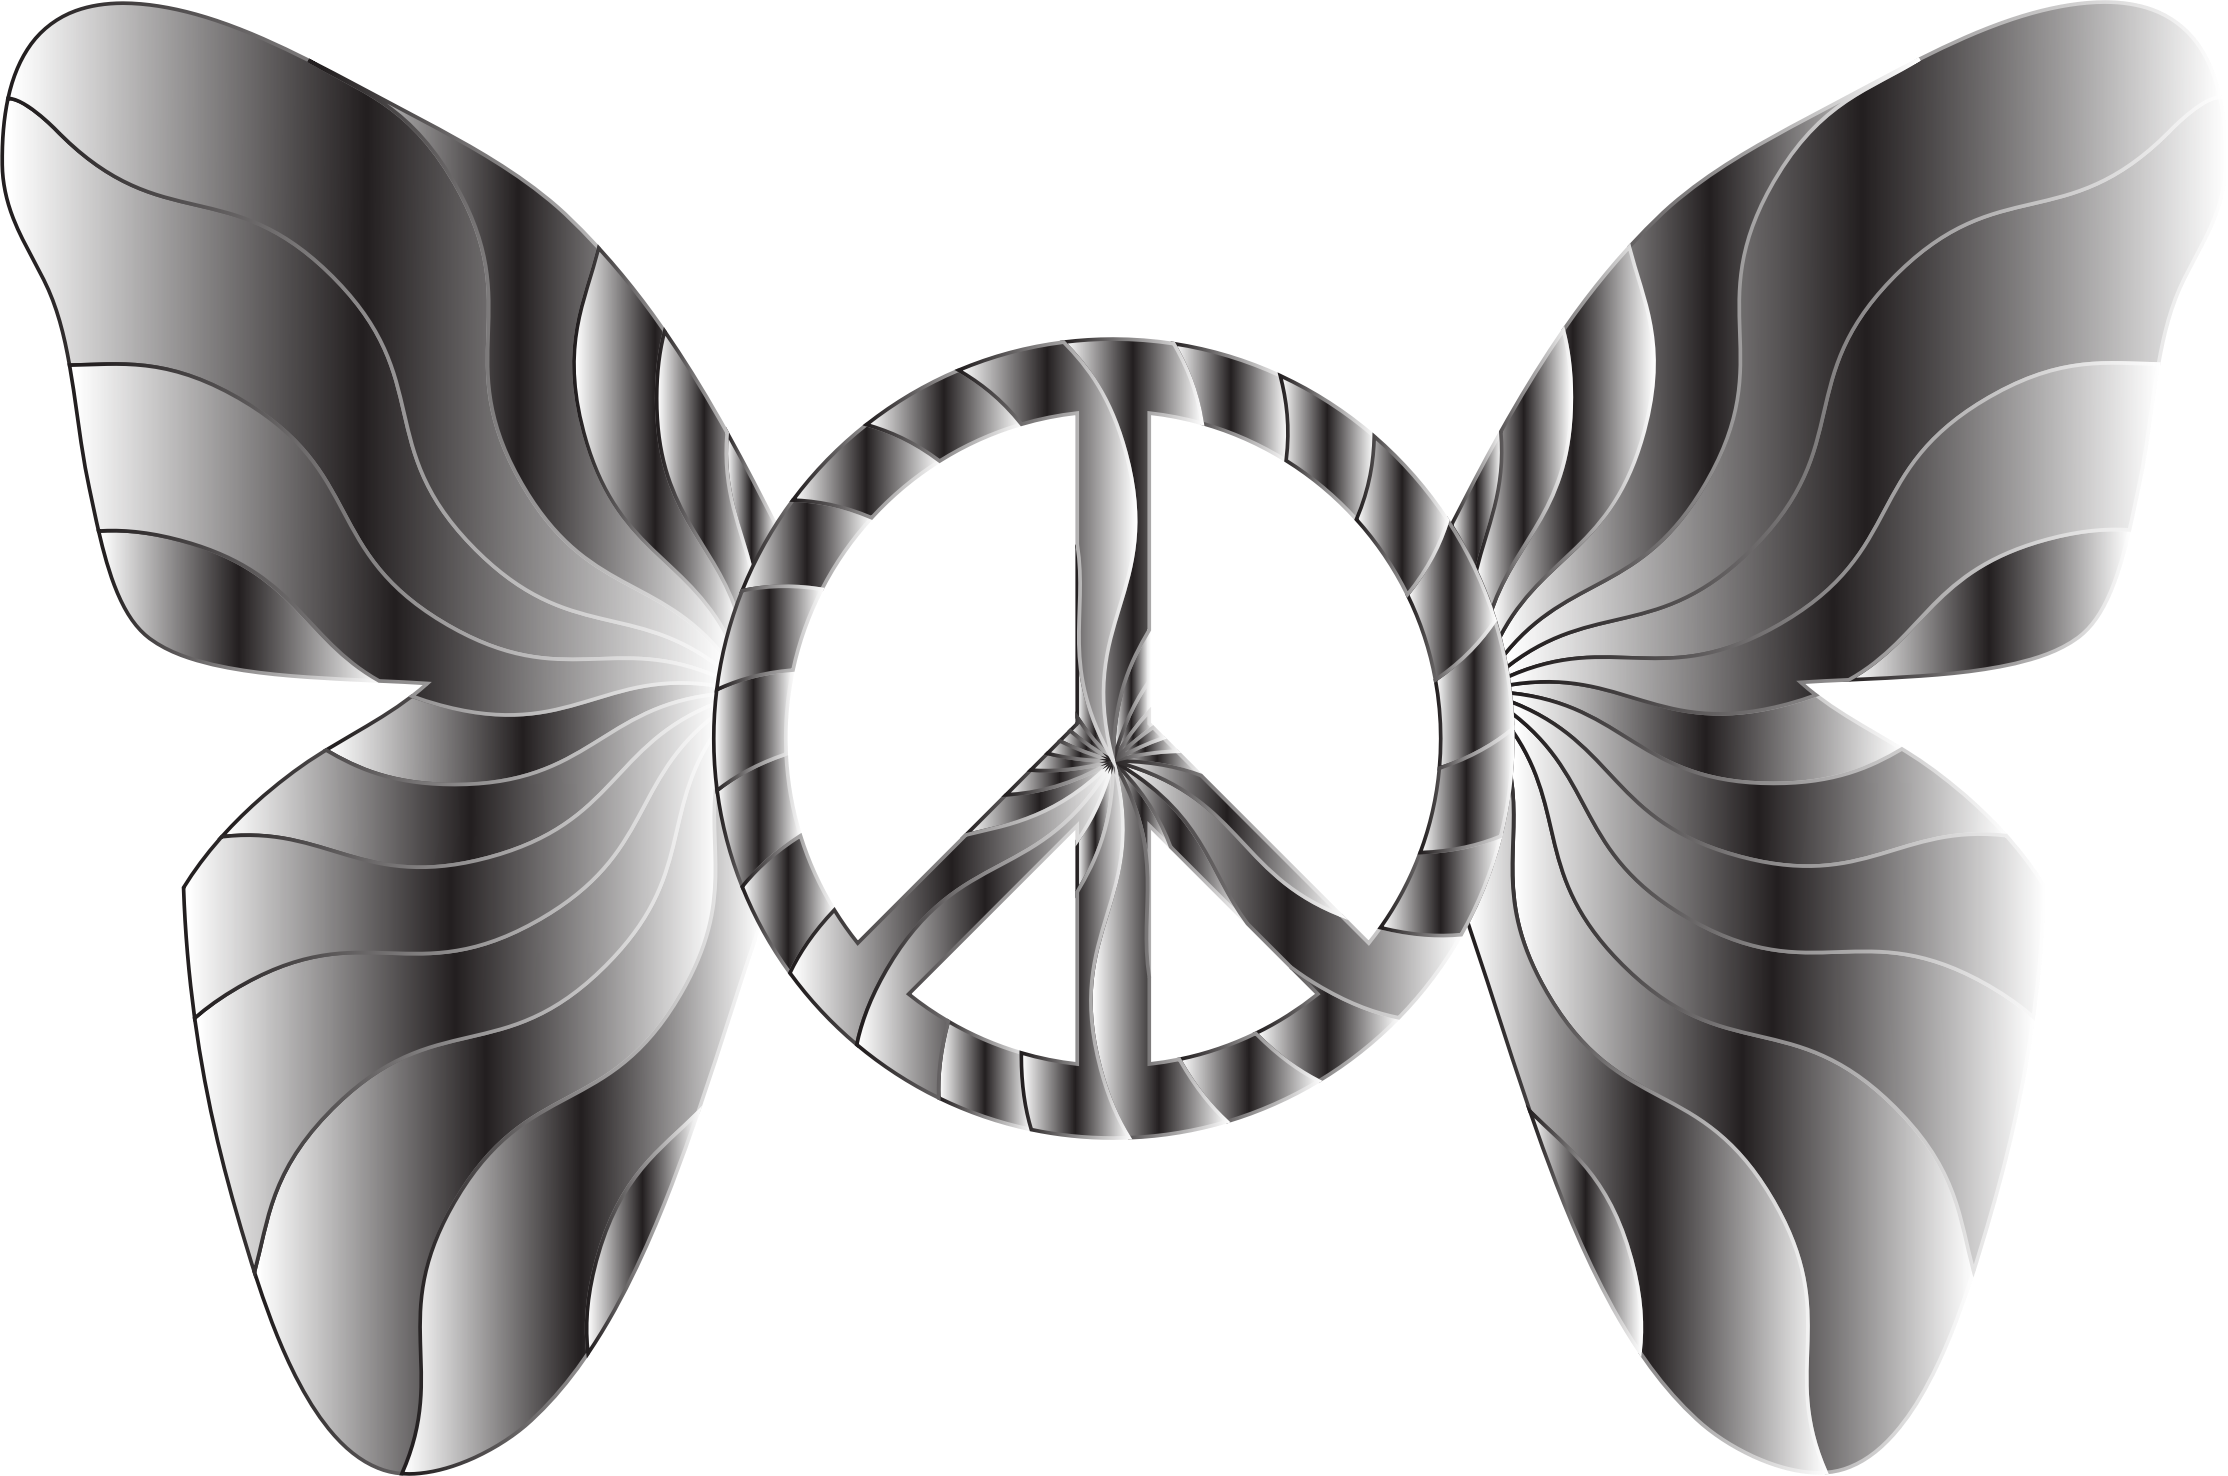 Groovy Peace Sign Butterfly 15 by GDJ